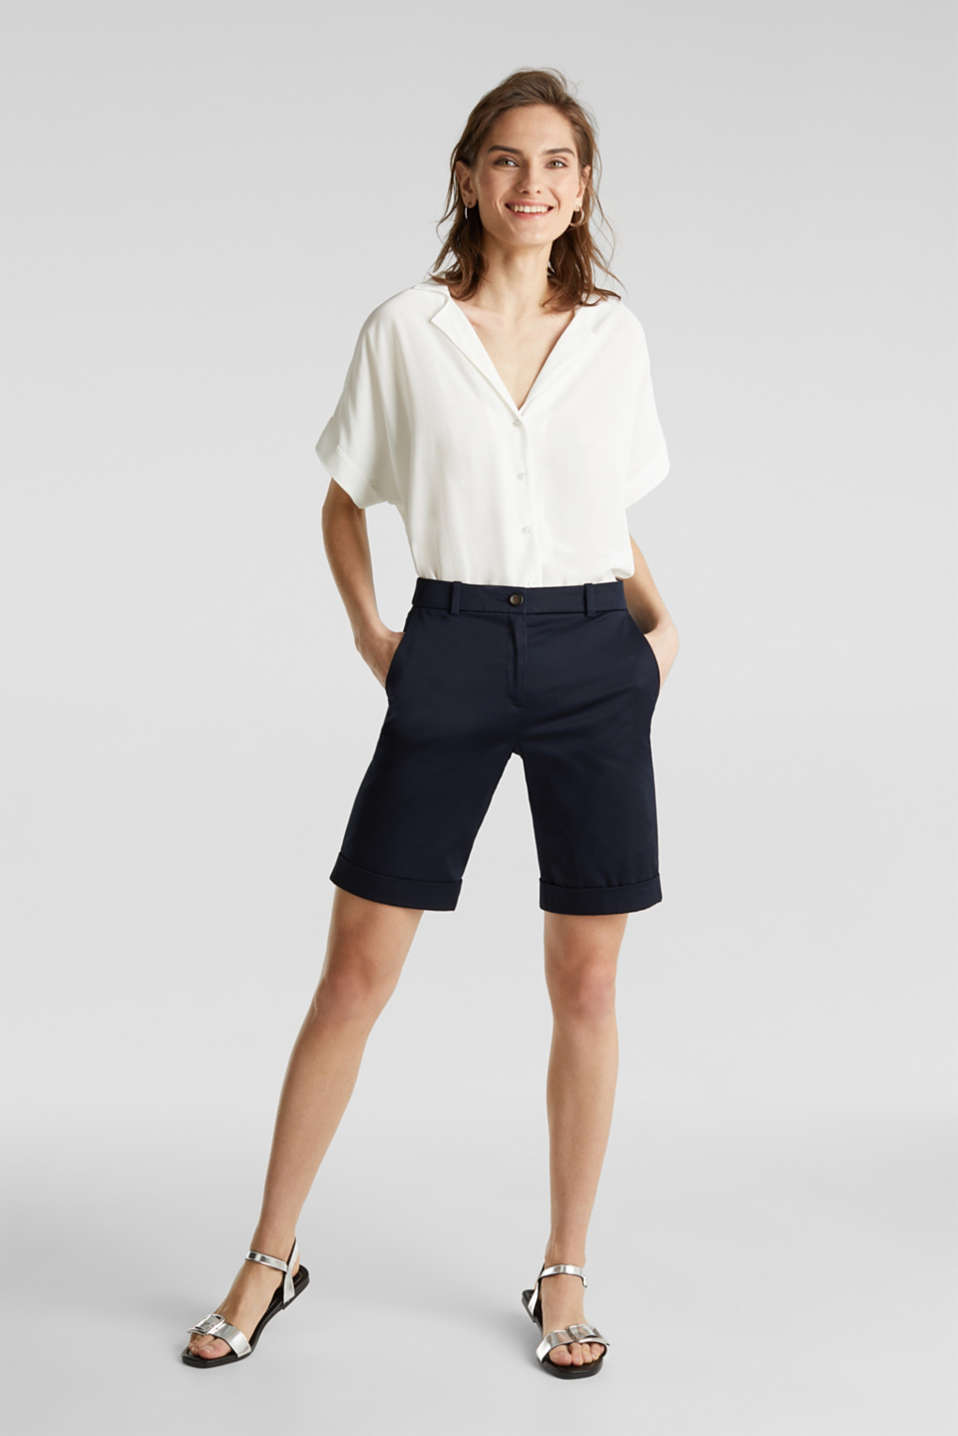 Stretchy satined Bermuda shorts, NAVY, detail image number 6